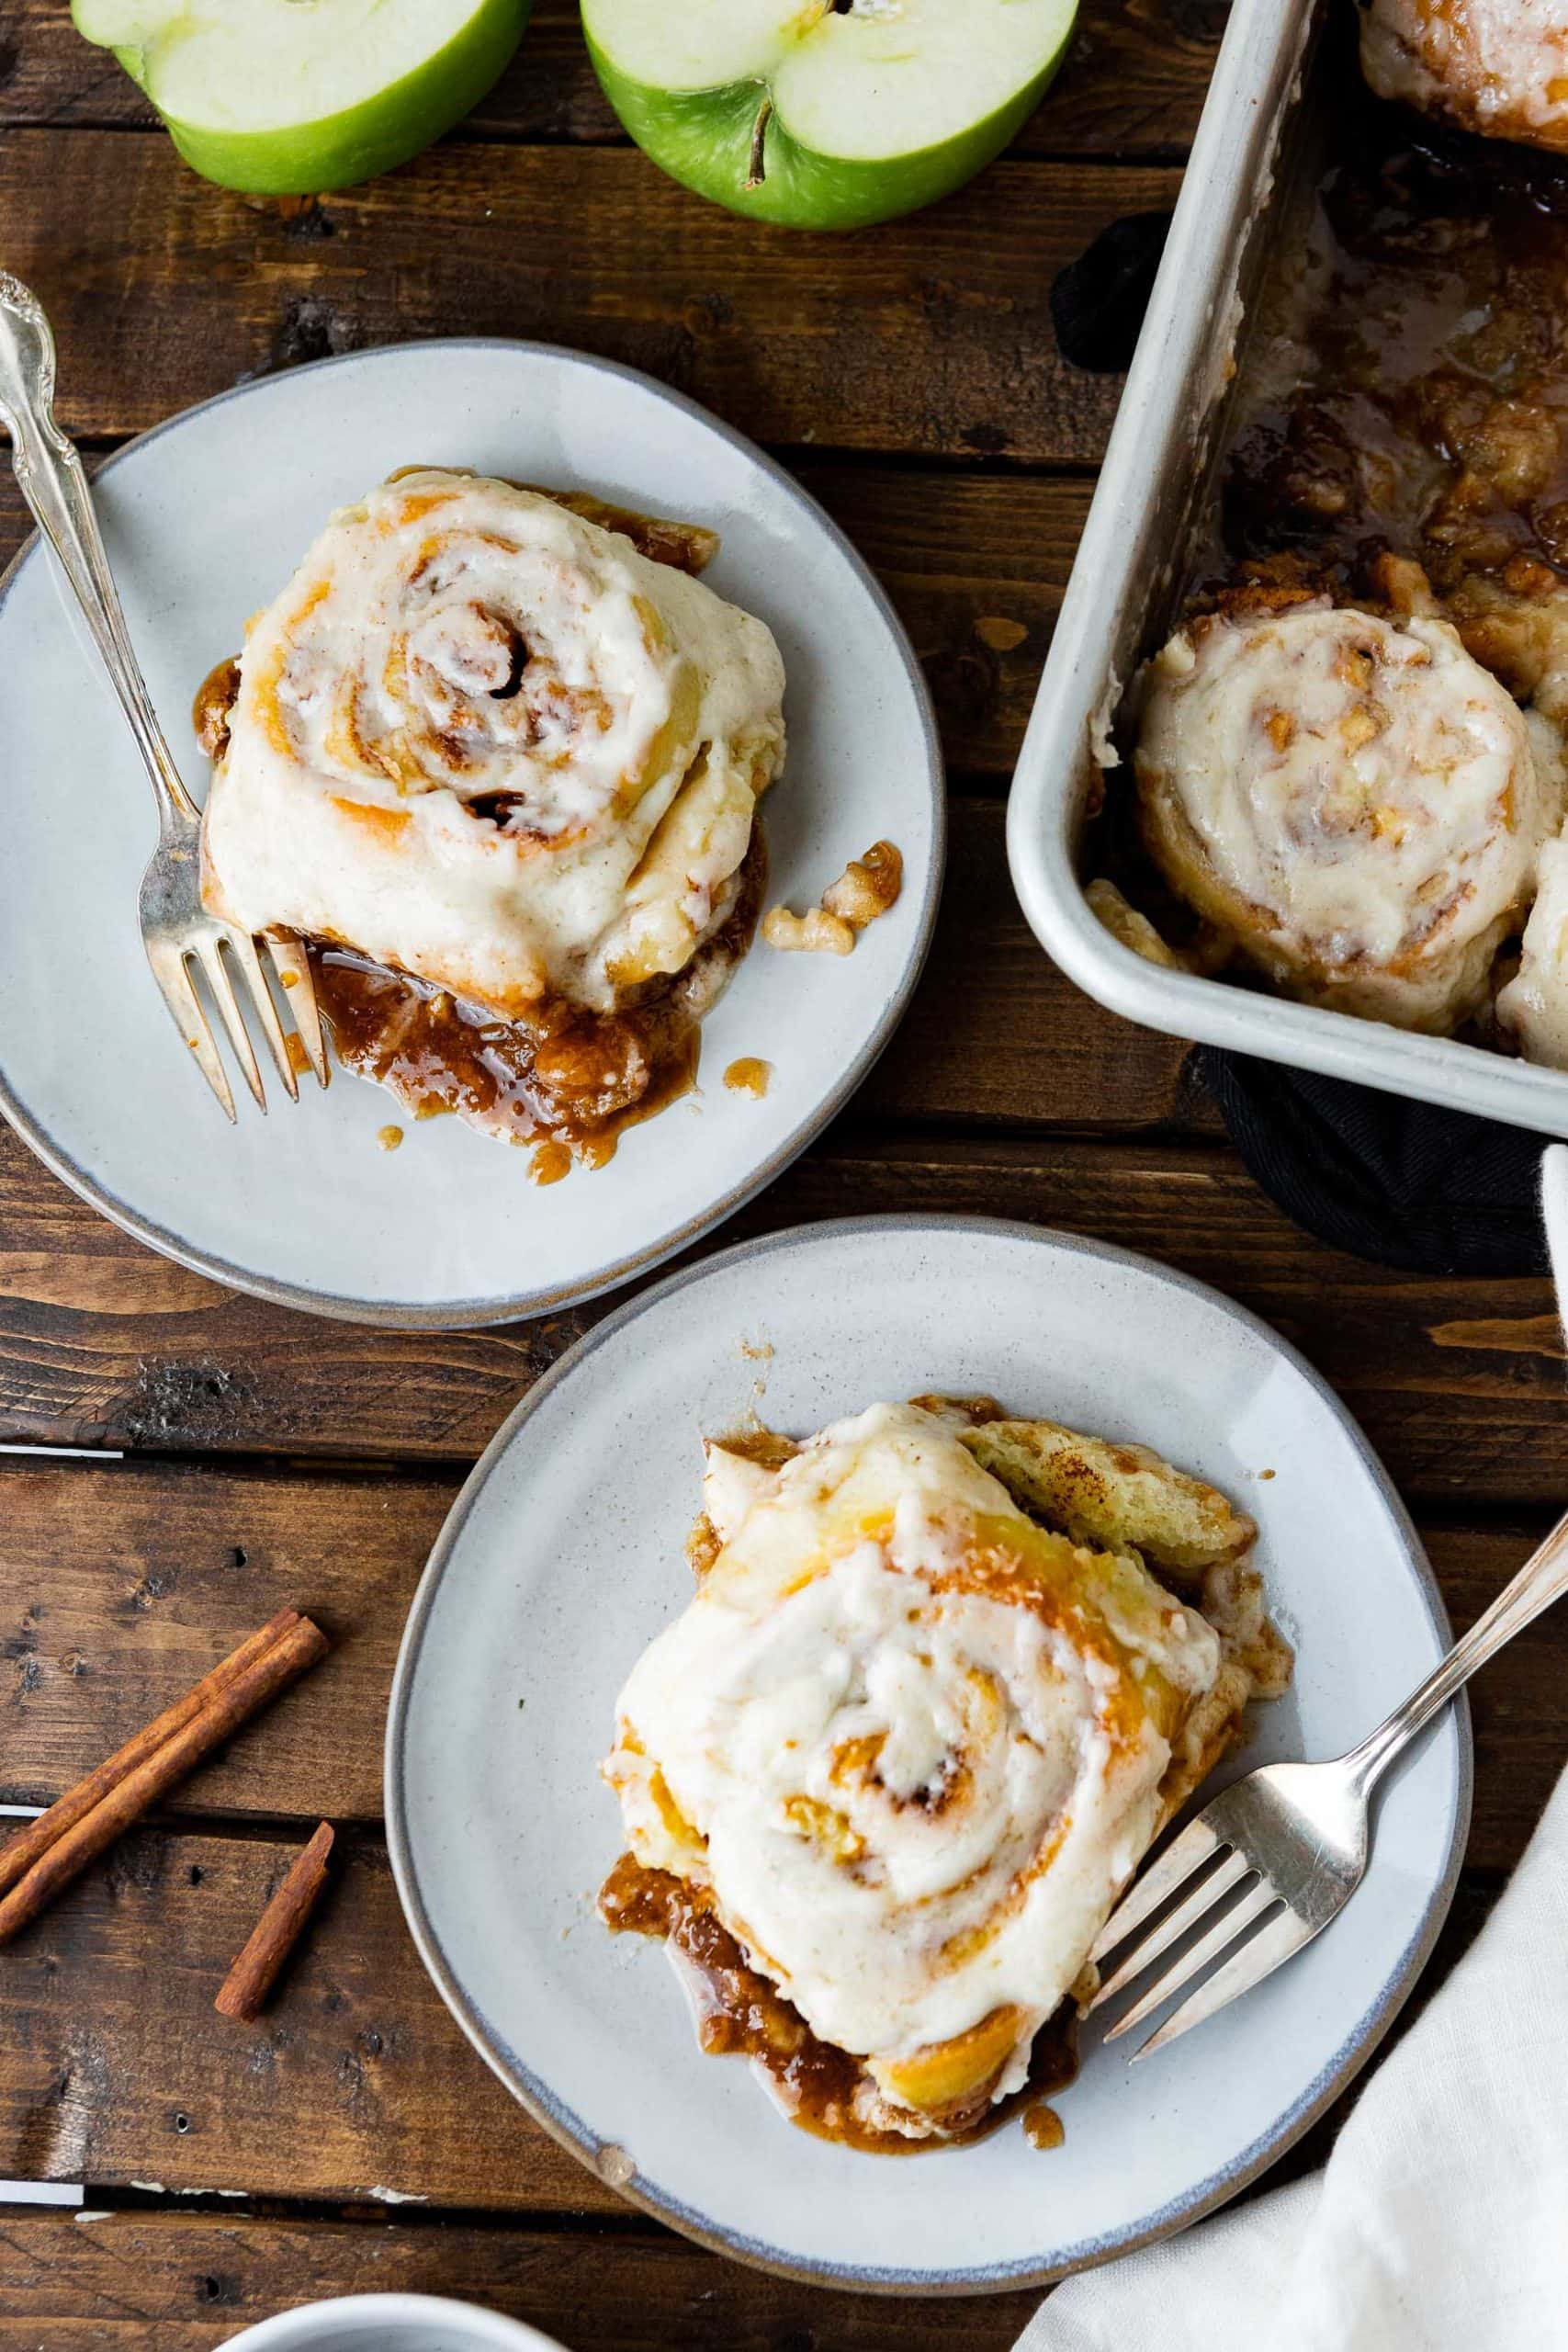 a photo of two apple cinnamon rolls each sitting on a separate saucer with a fork sitting on the saucer and covered in melty browned butter icing.